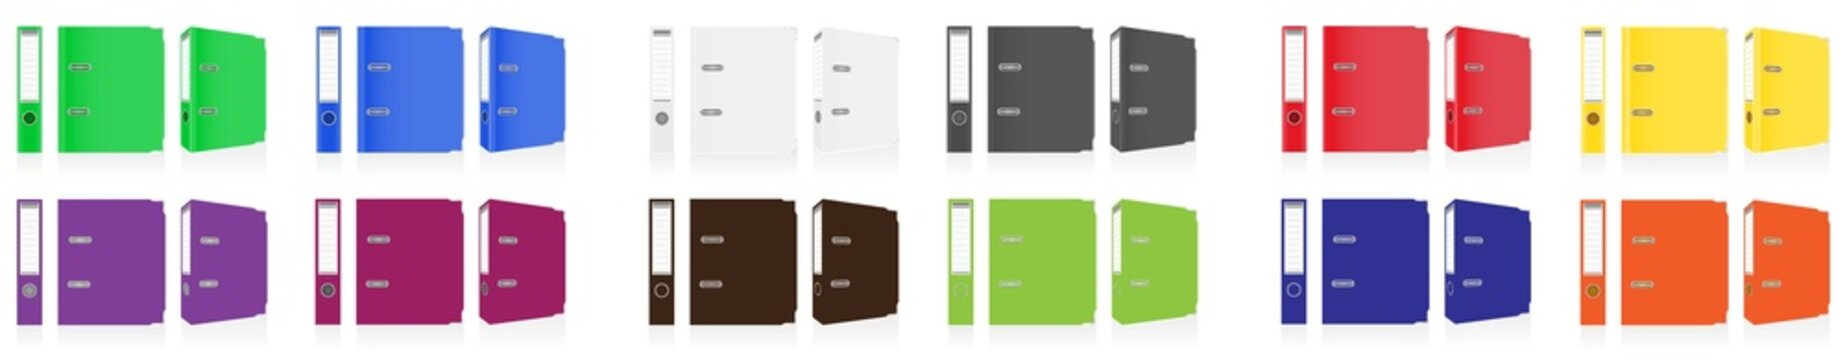 folder colors binder metal rings for office, 3 ring binder, realistic mock up. Set of white, gray,Files and Folders Vector Office binders, standing five in row,